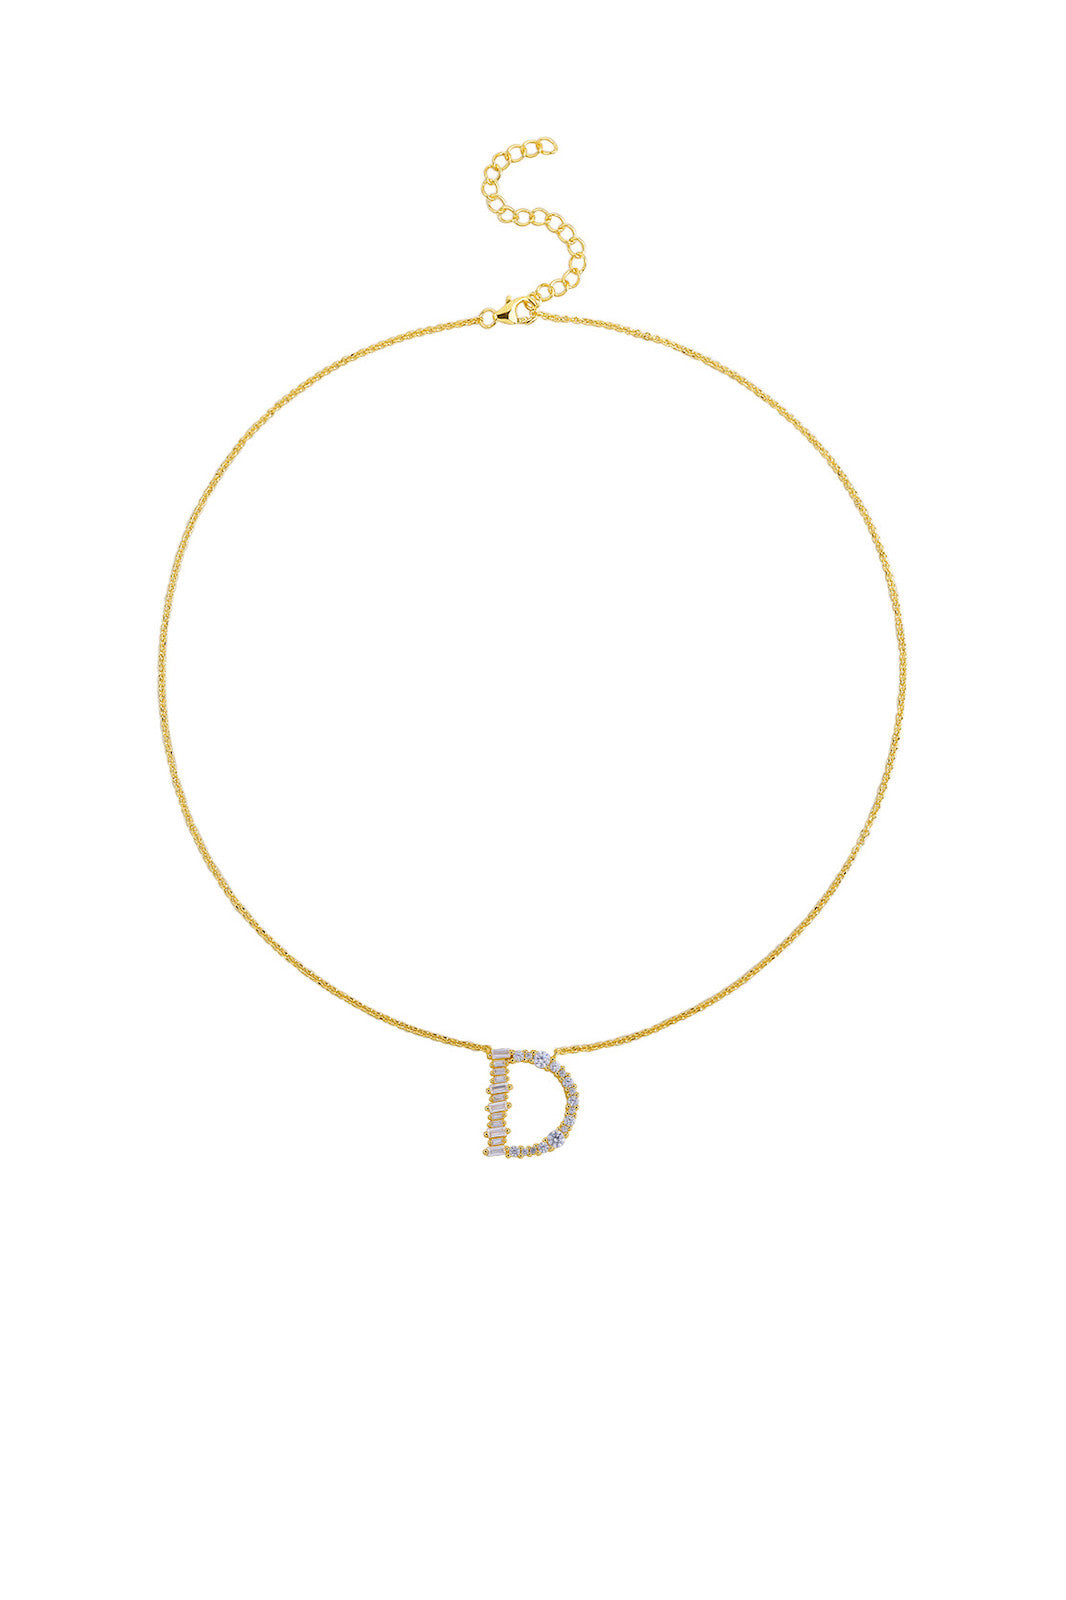 Gold Plated Sterling Silver Initial Necklace - Letter D Detail